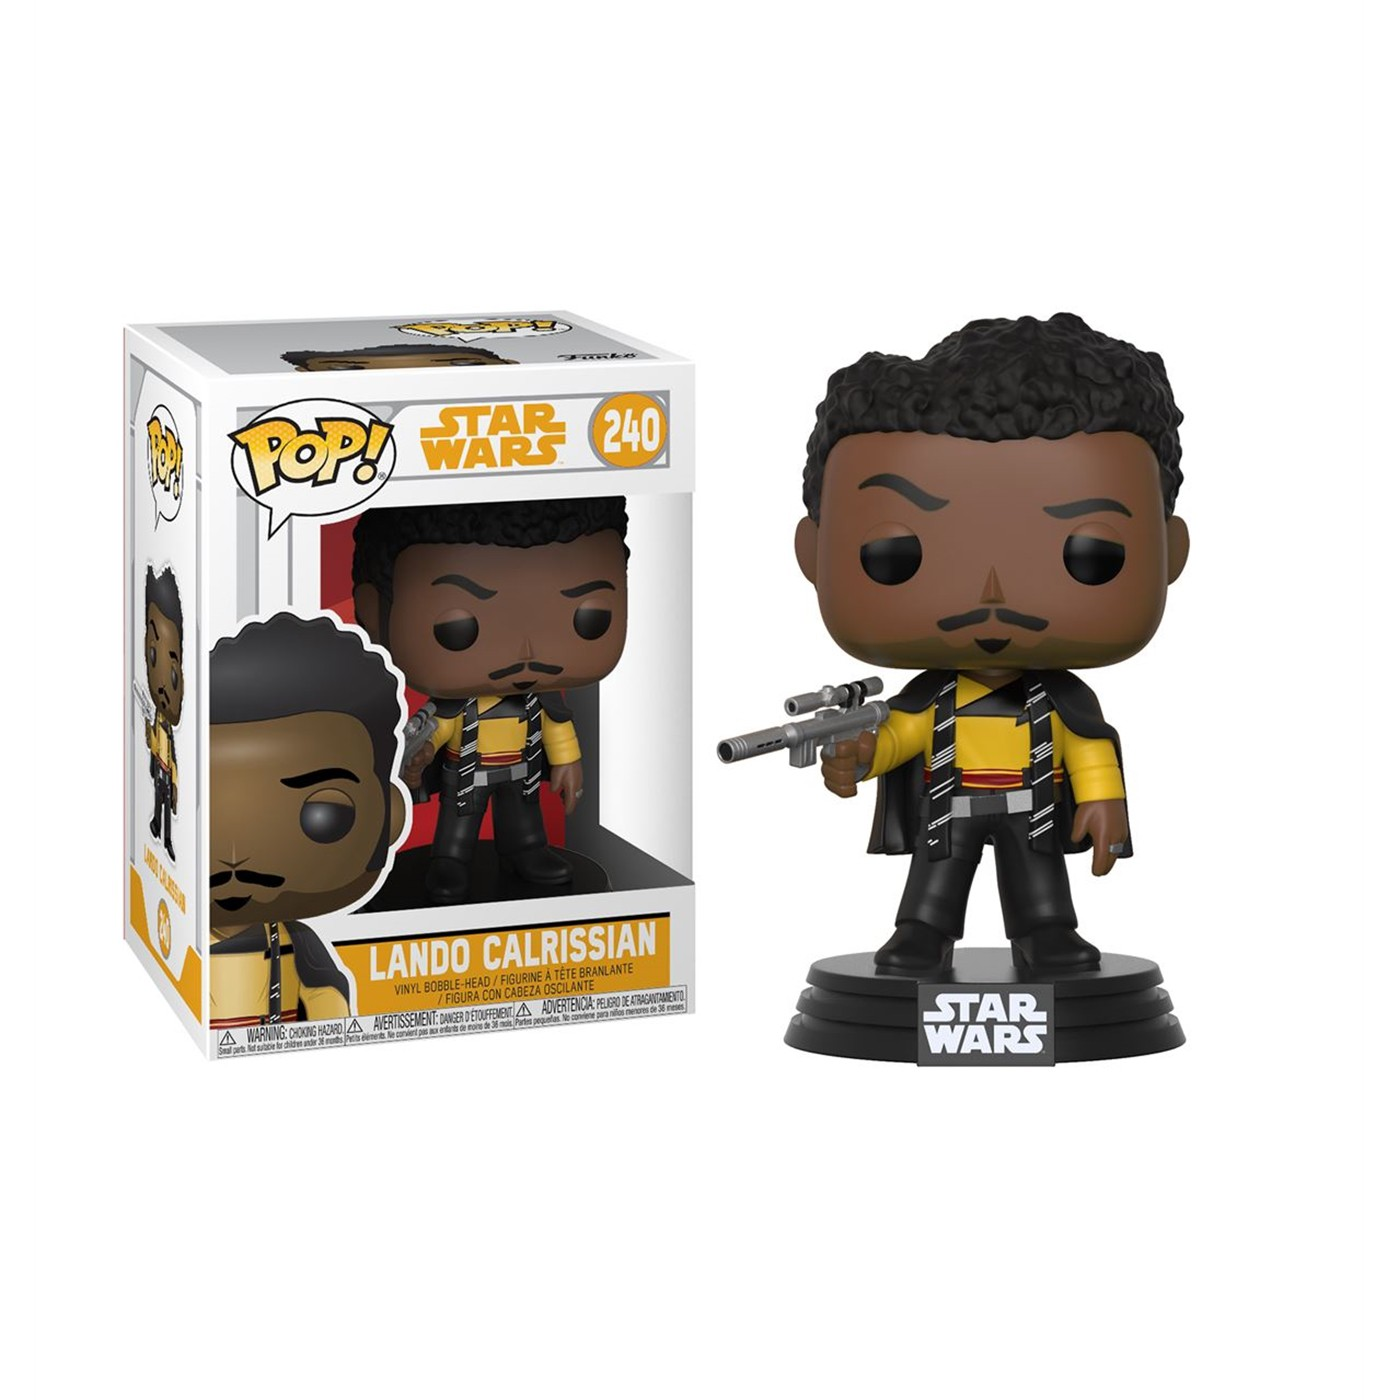 Star Wars Solo Lando Calrissian Funko Pop Bobble Head